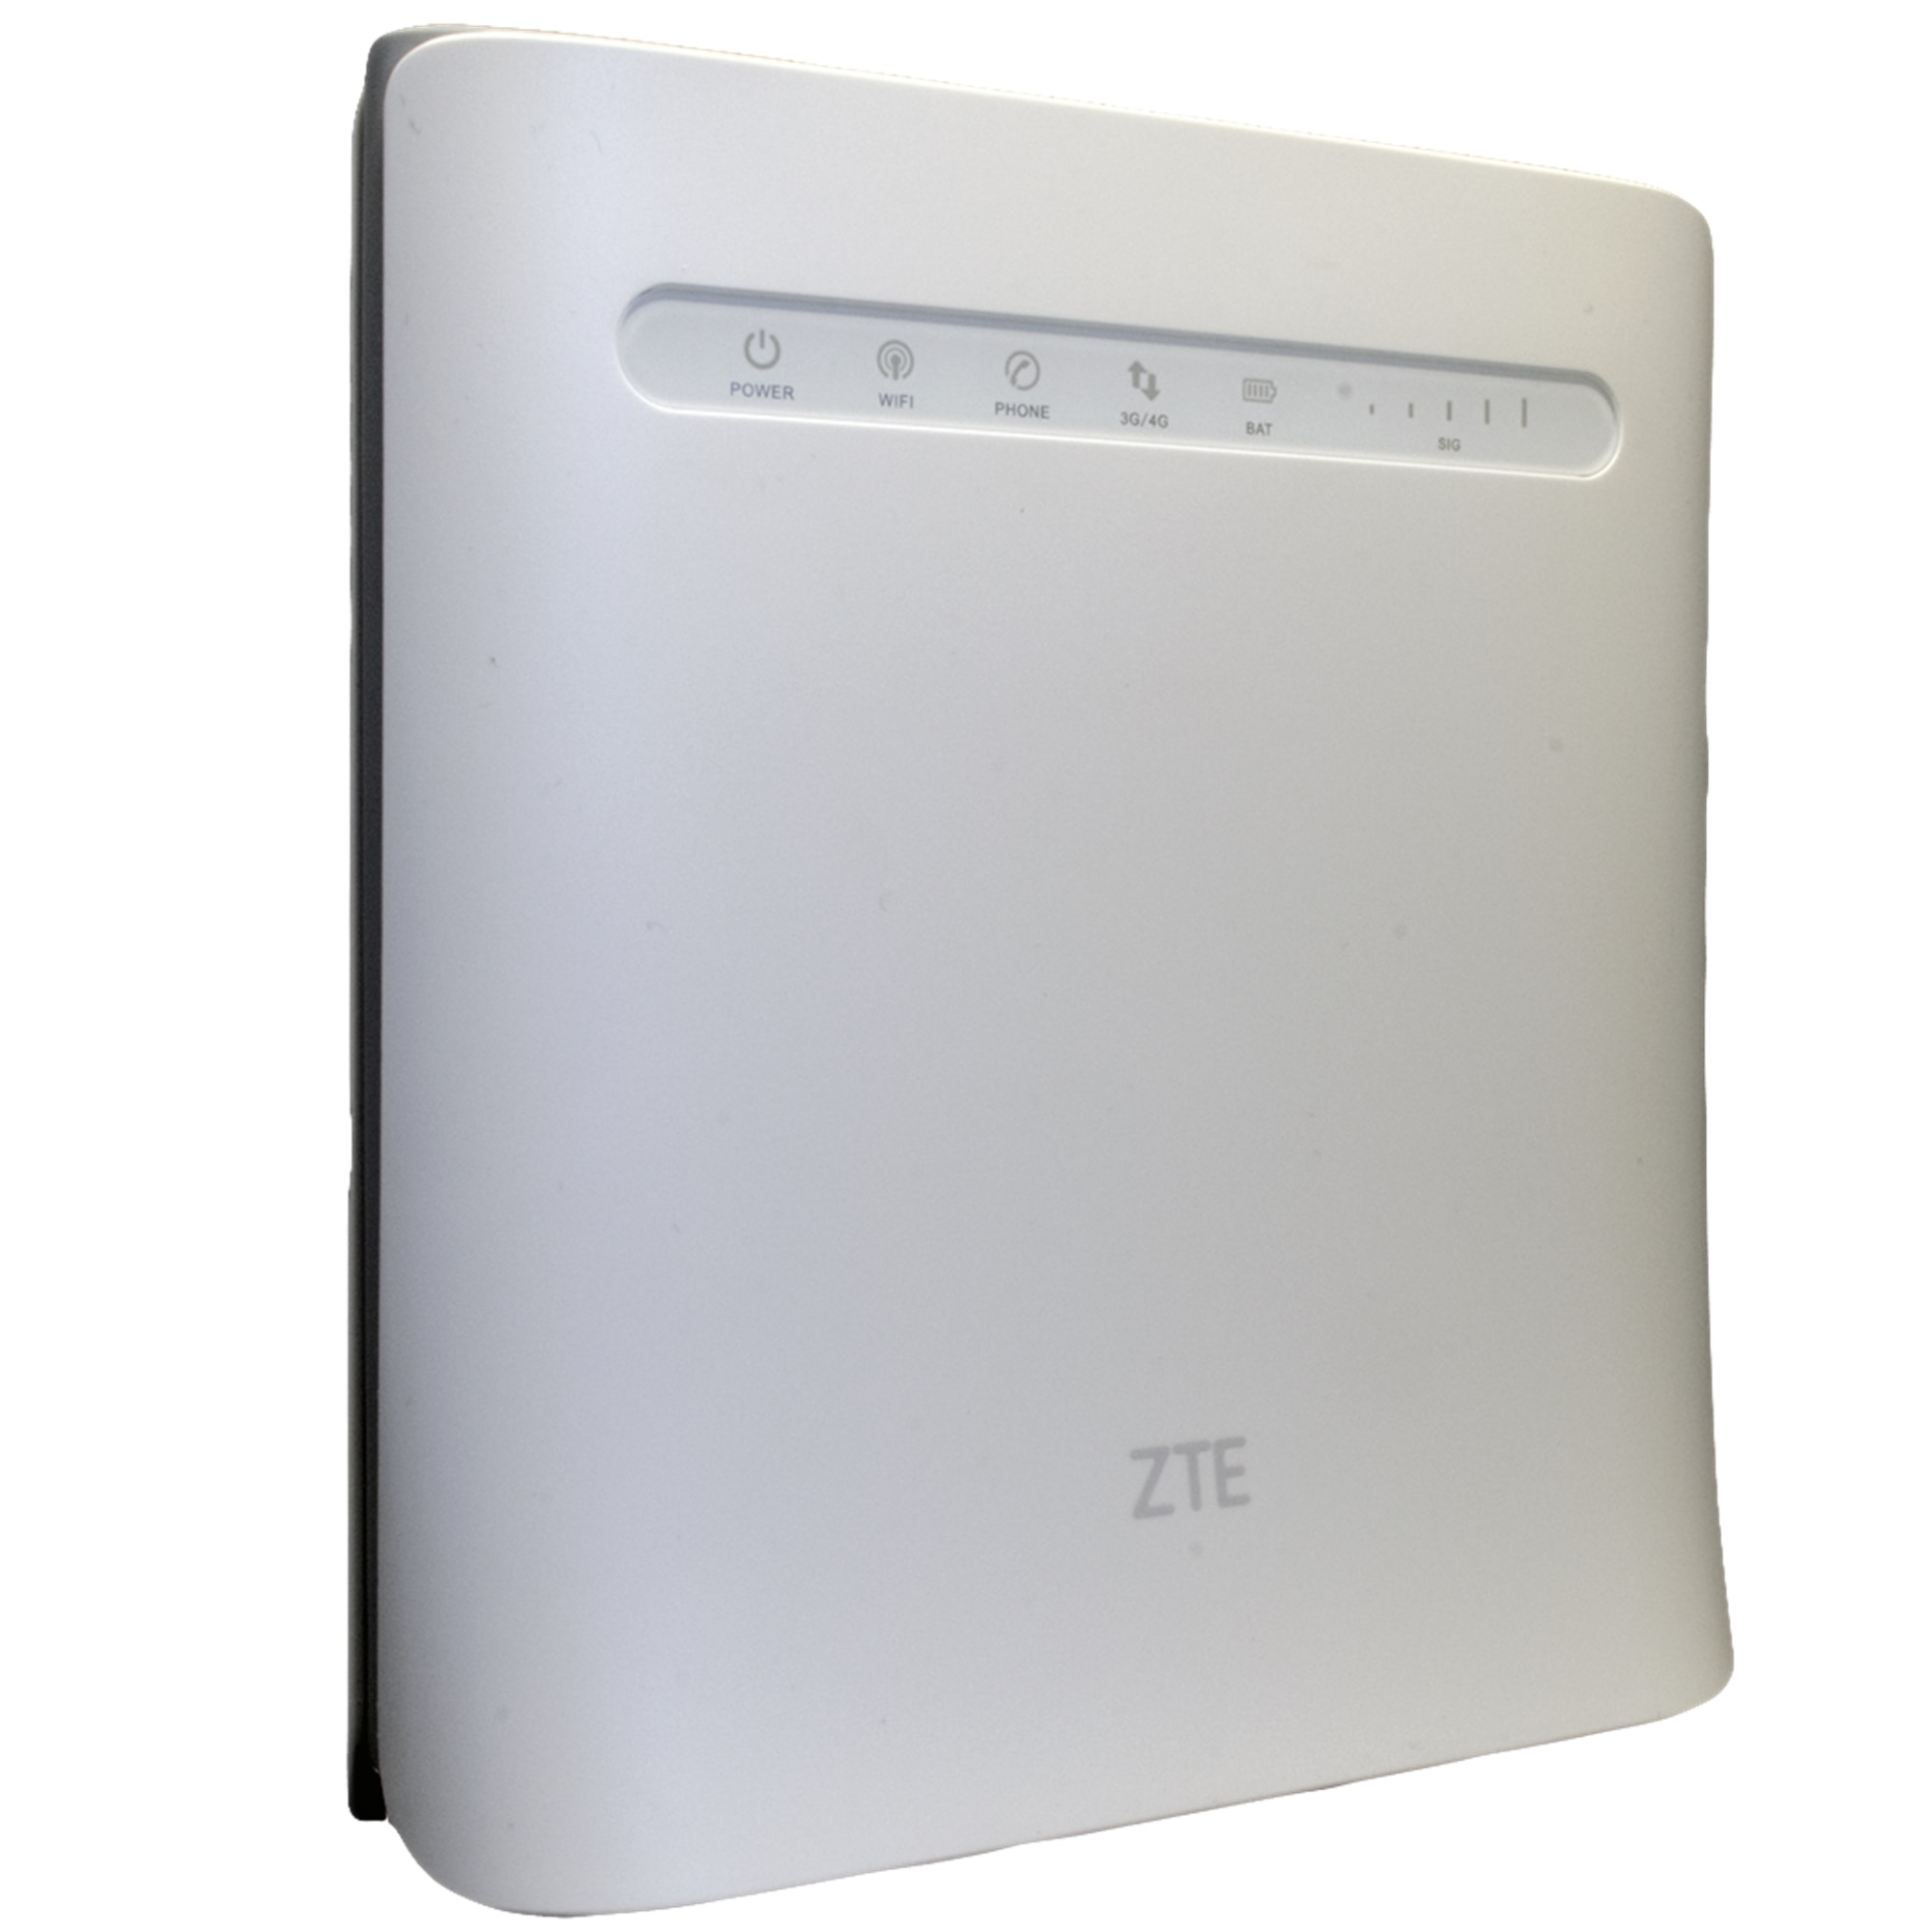 Fotografie Router Wireless ZTE MF286, Gigabit, Dual Band, 450 + 867 Mbps, 4G